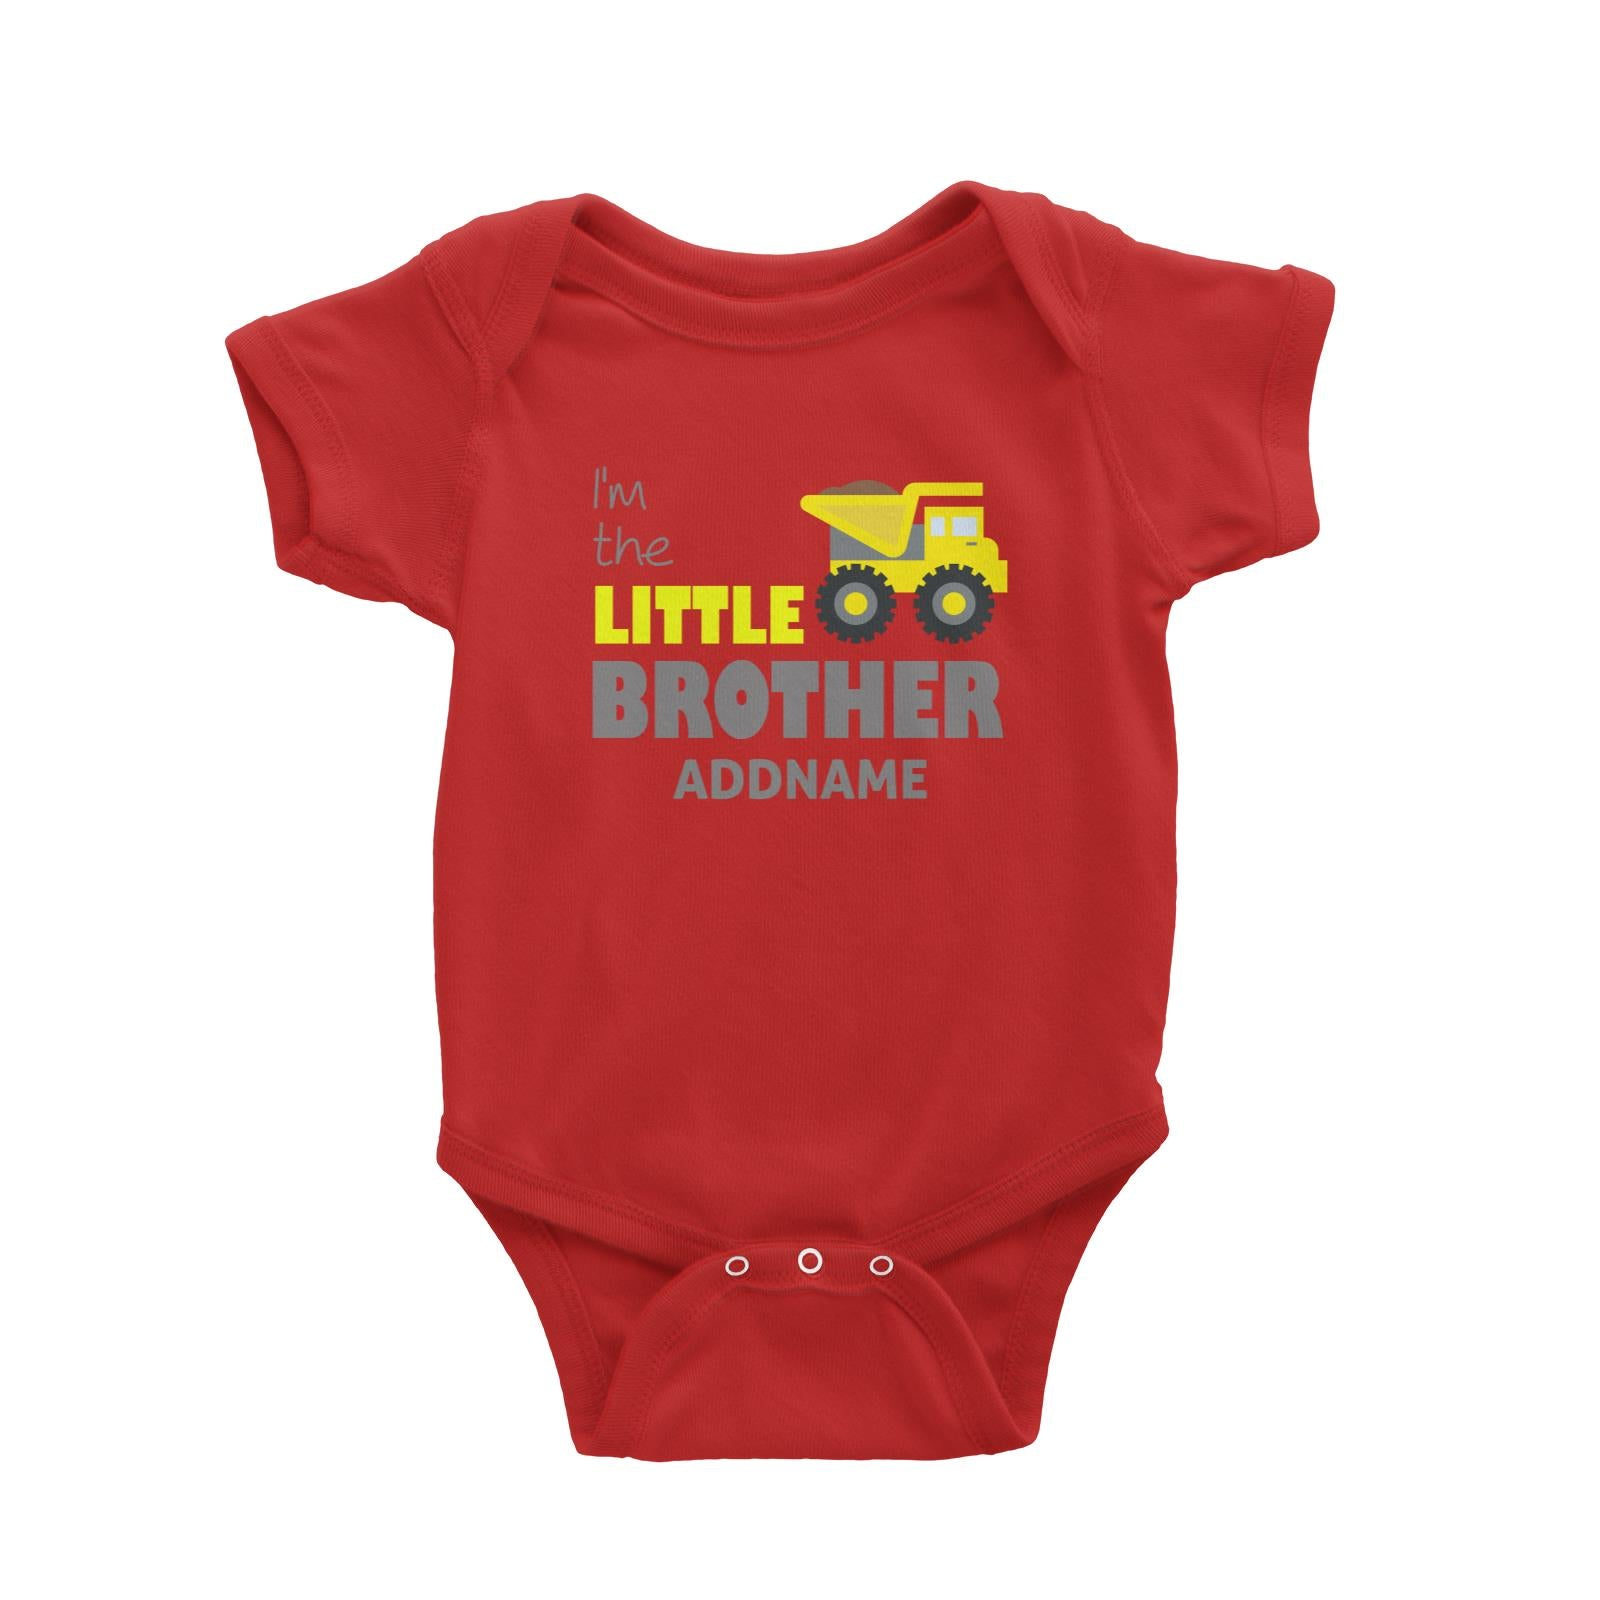 I'm The Little Brother Addname with Yellow Bulldozer Baby Romper Personalizable Designs Basic Newborn